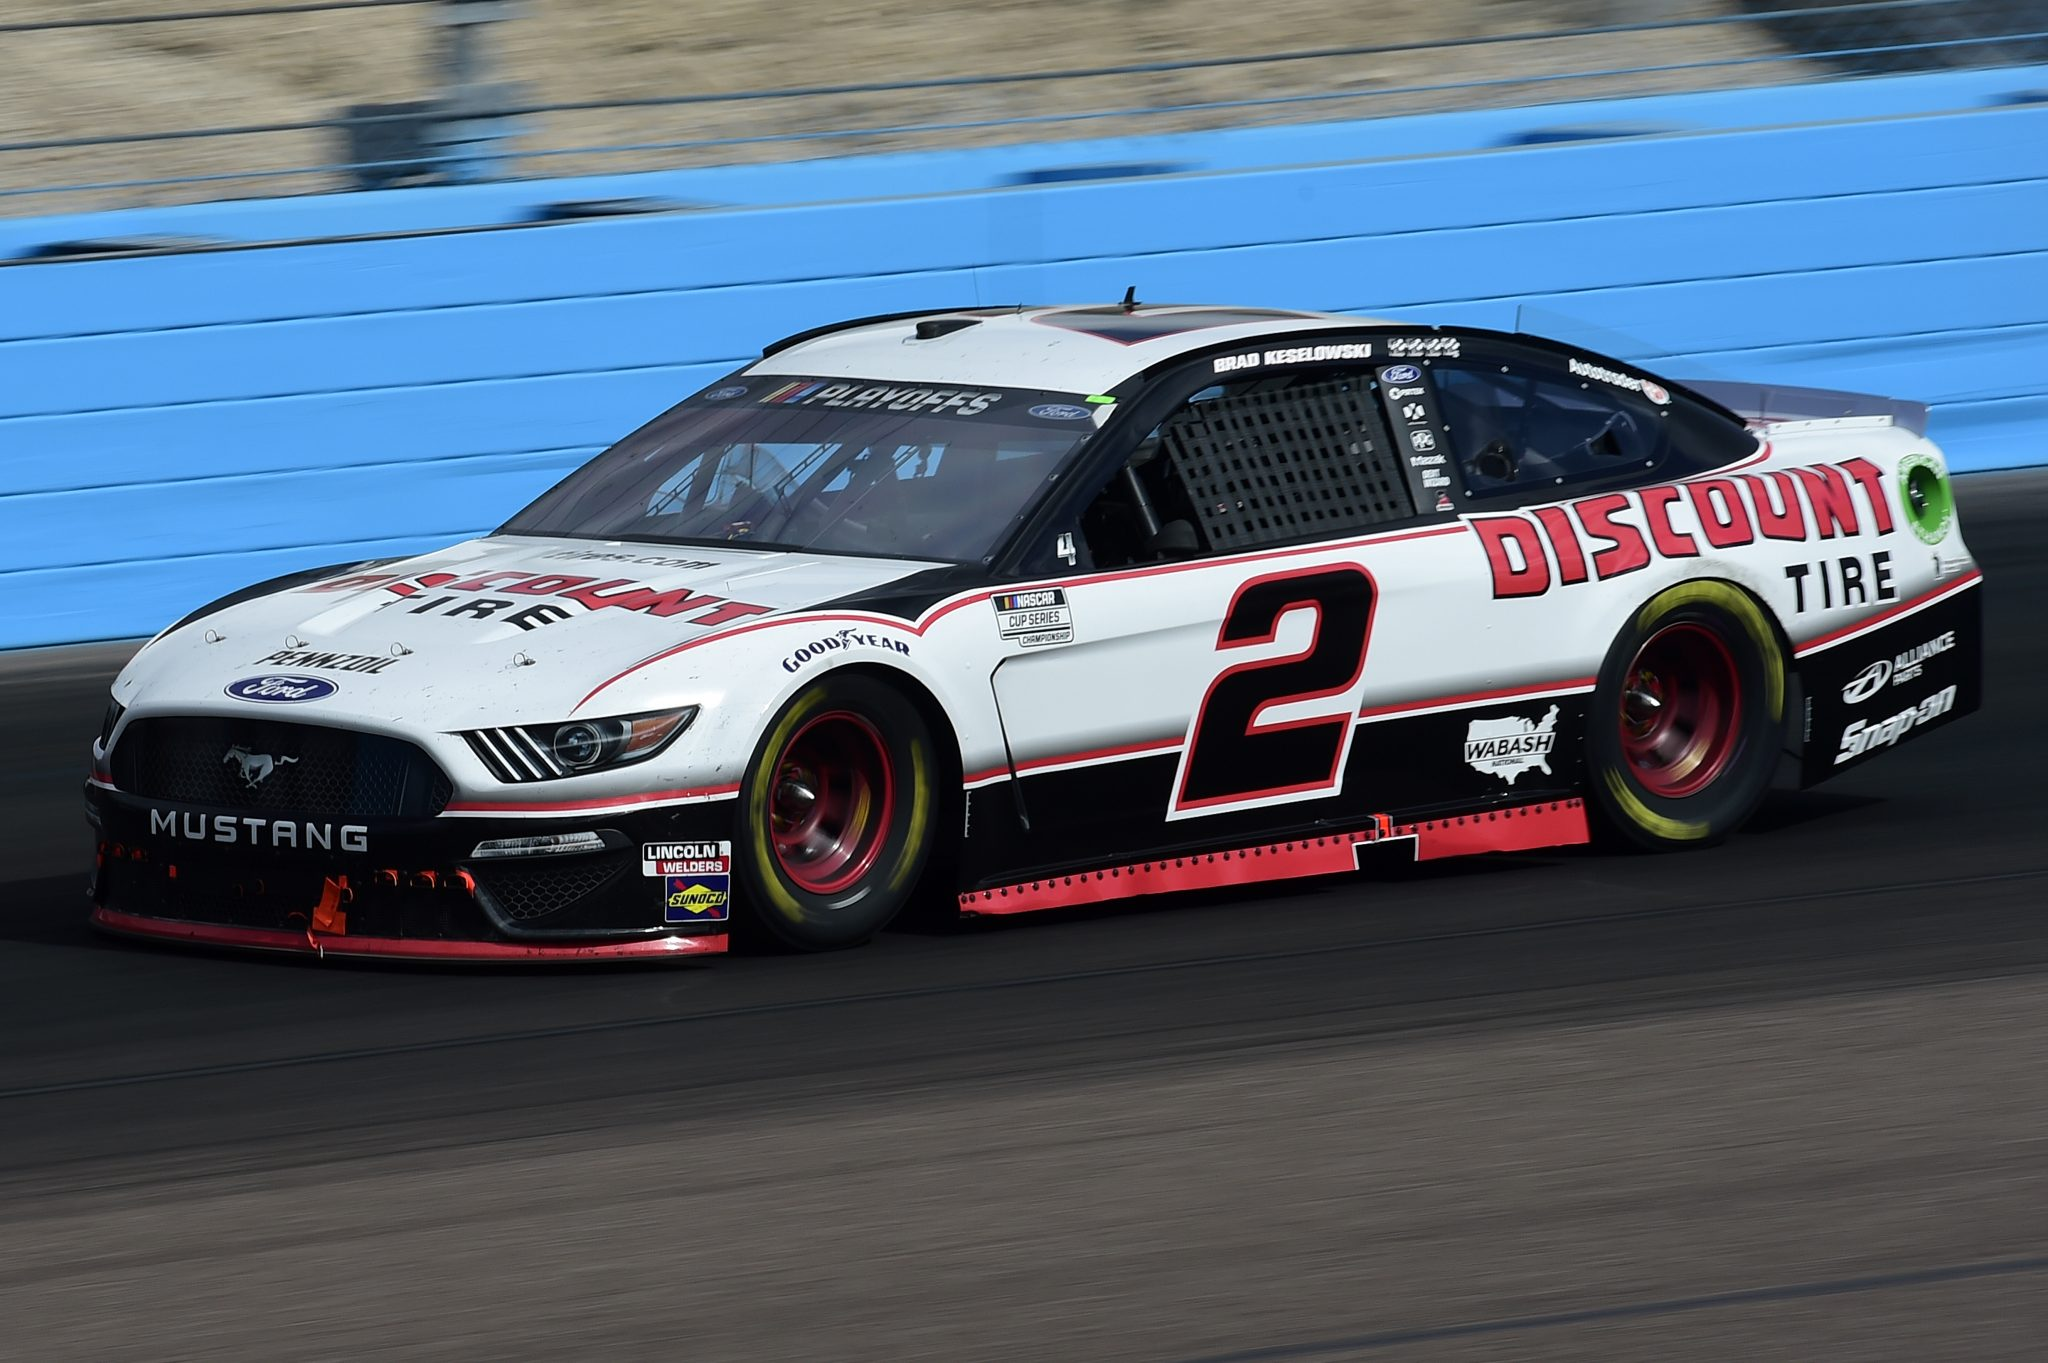 AVONDALE, ARIZONA - NOVEMBER 08: Brad Keselowski, driver of the #2 Discount Tire Ford, drives during the NASCAR Cup Series Season Finale 500 at Phoenix Raceway on November 08, 2020 in Avondale, Arizona. (Photo by Jared C. Tilton/Getty Images) | Getty Images